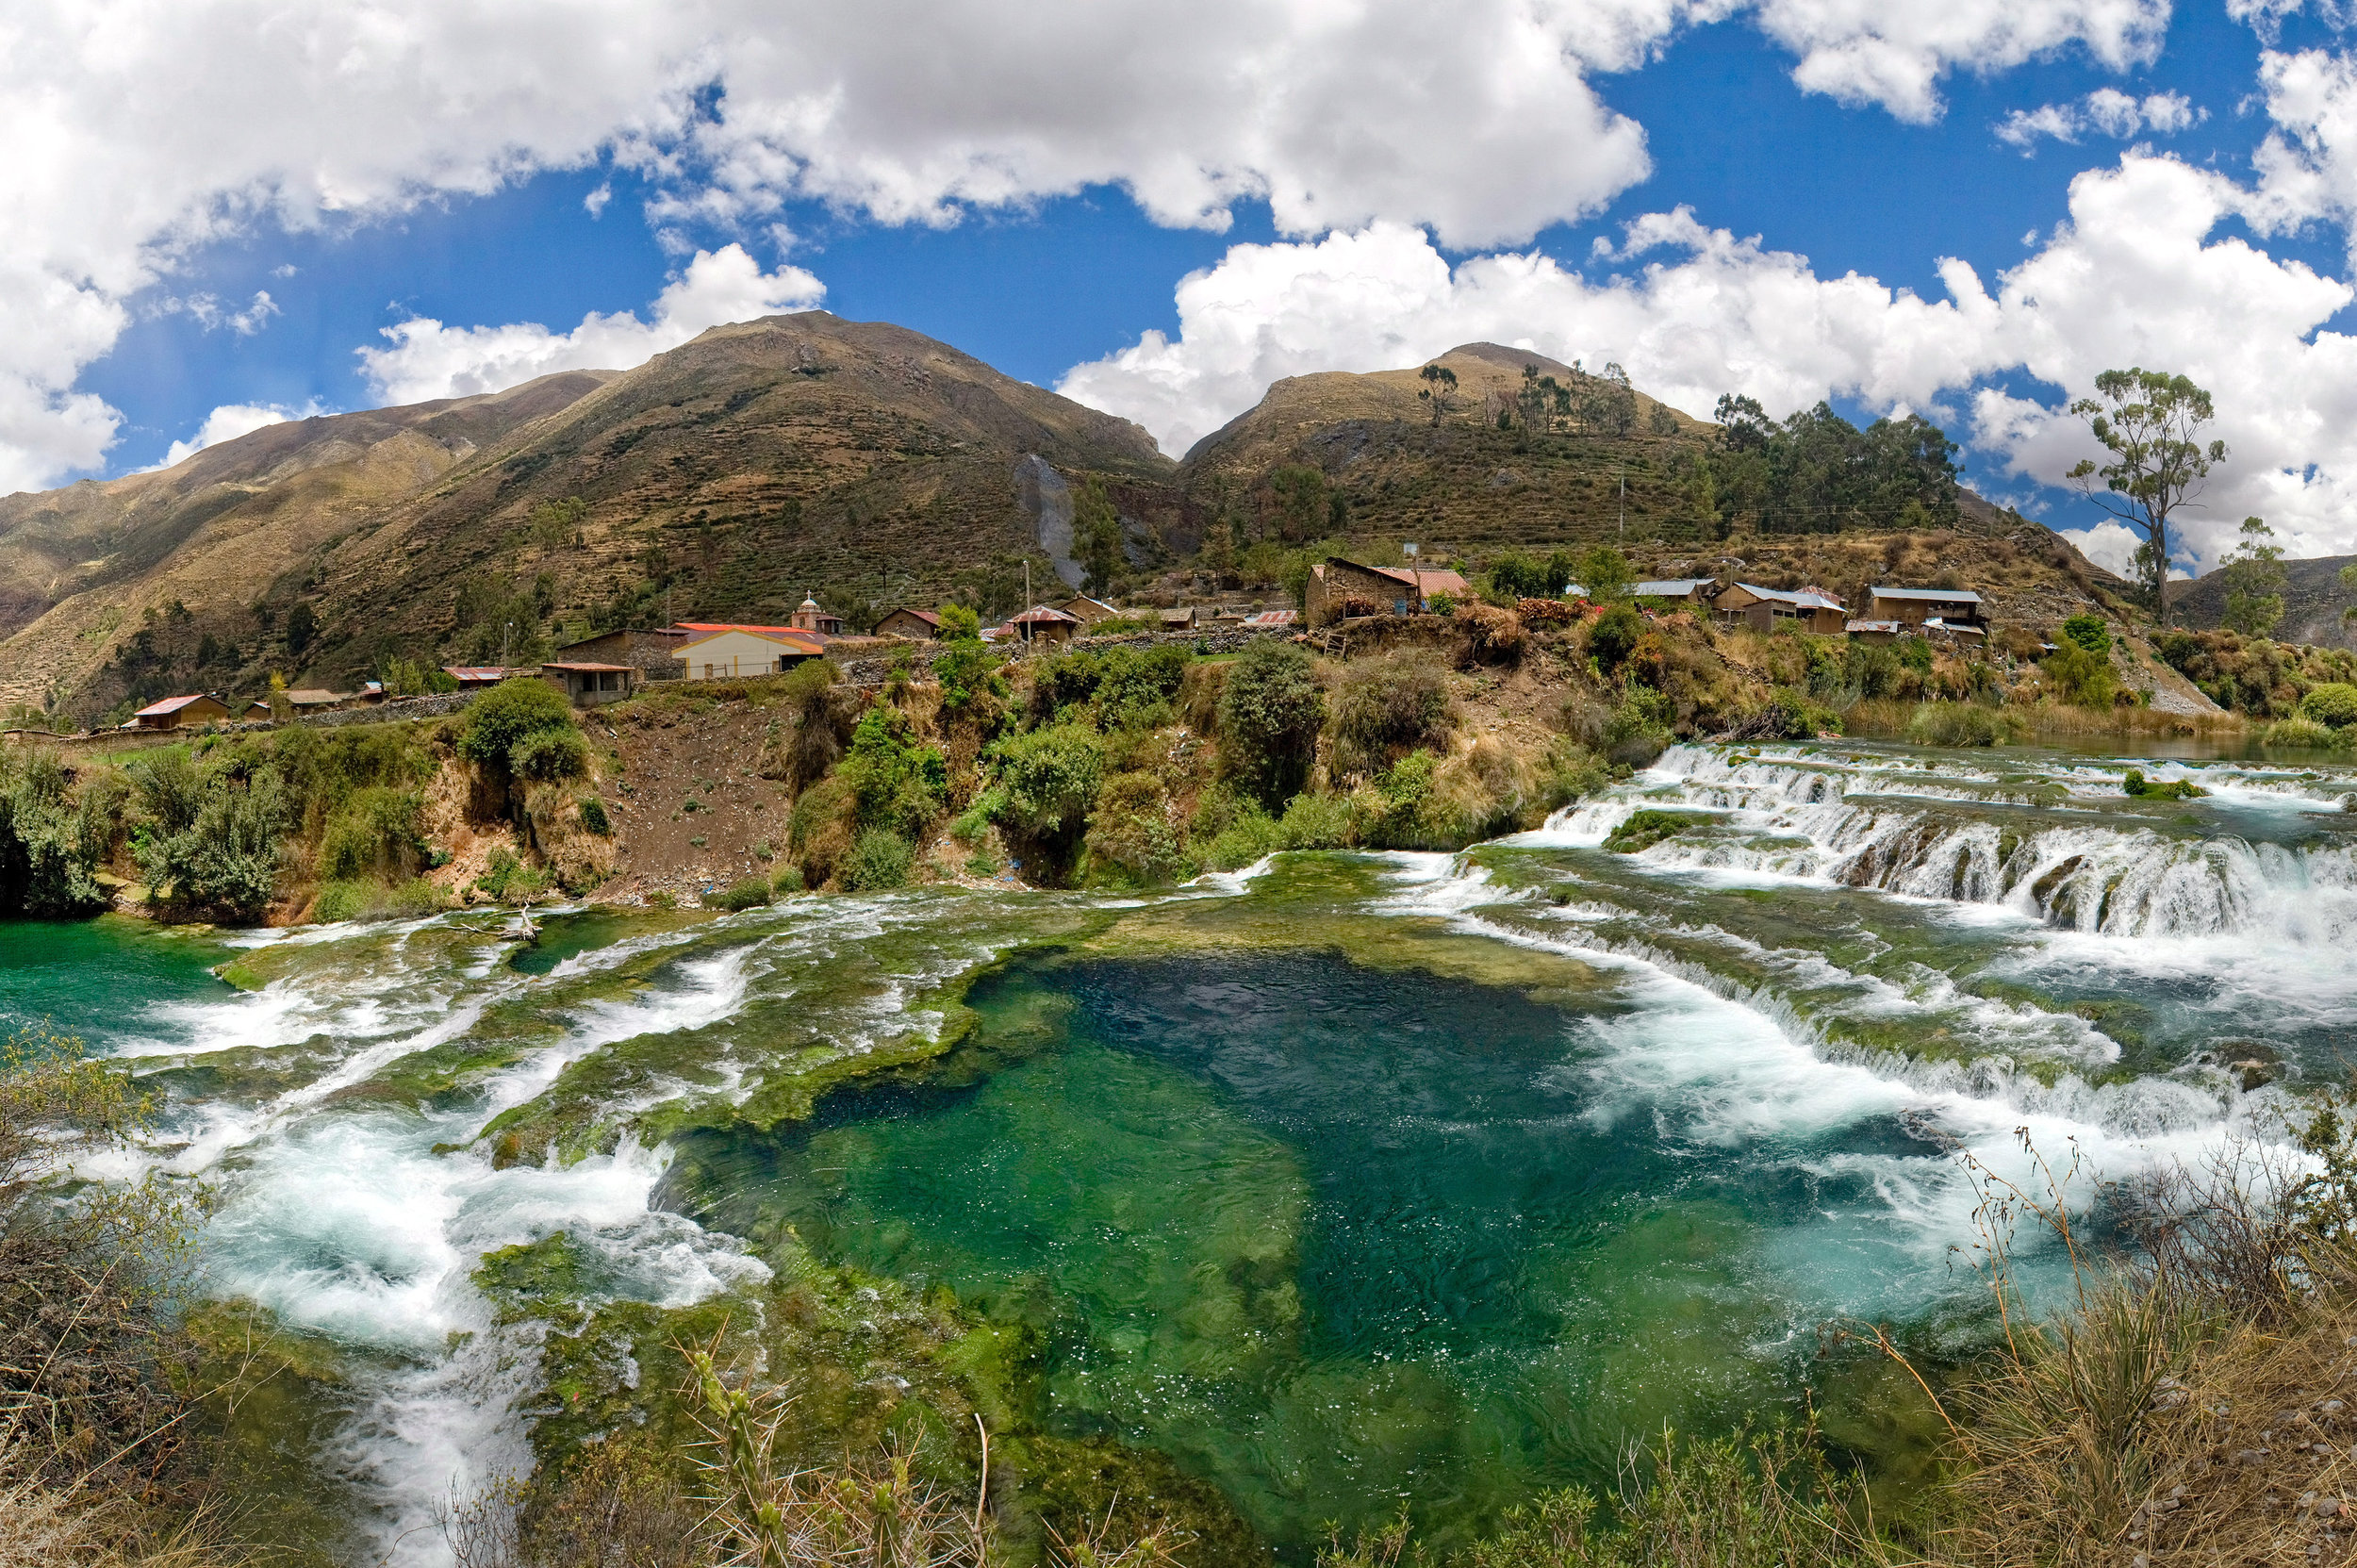 Huancaya - One of the most magical places in peru, just few hour from lima.Start your two days tour in adventures rafting in Lunahuana, then continue to an interesting and experiential trip in Lunahuana winery. On the next day you will take an unforgettable trip to the mesmerizing view of the waterfalls and lakes of Huancaya.